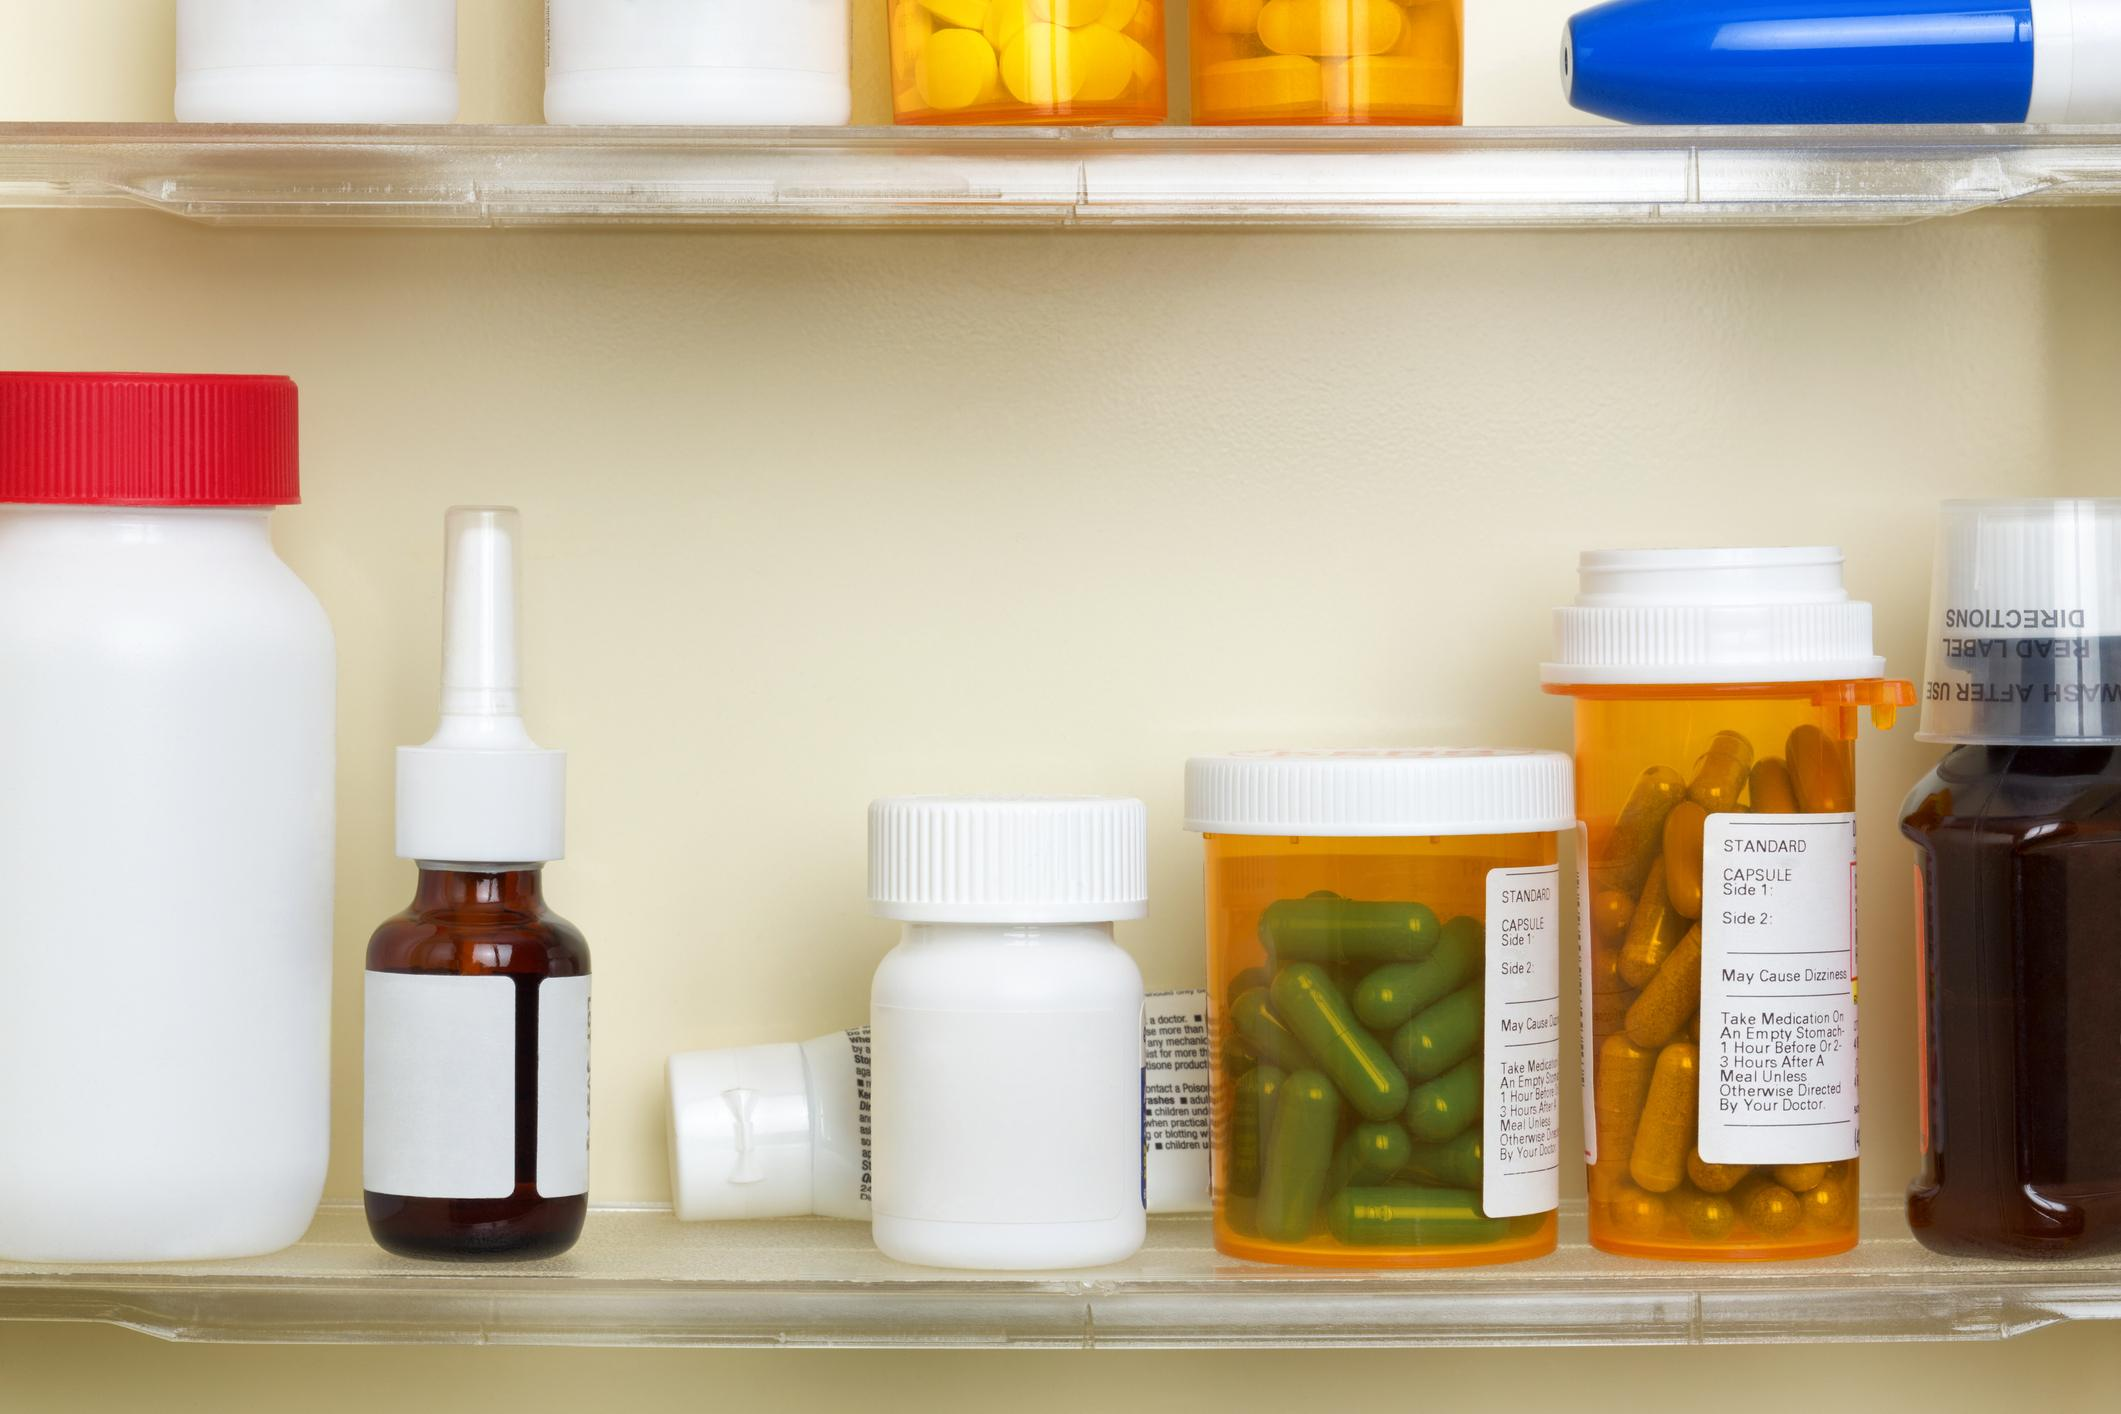 Medications on shelves of medicine cabinet